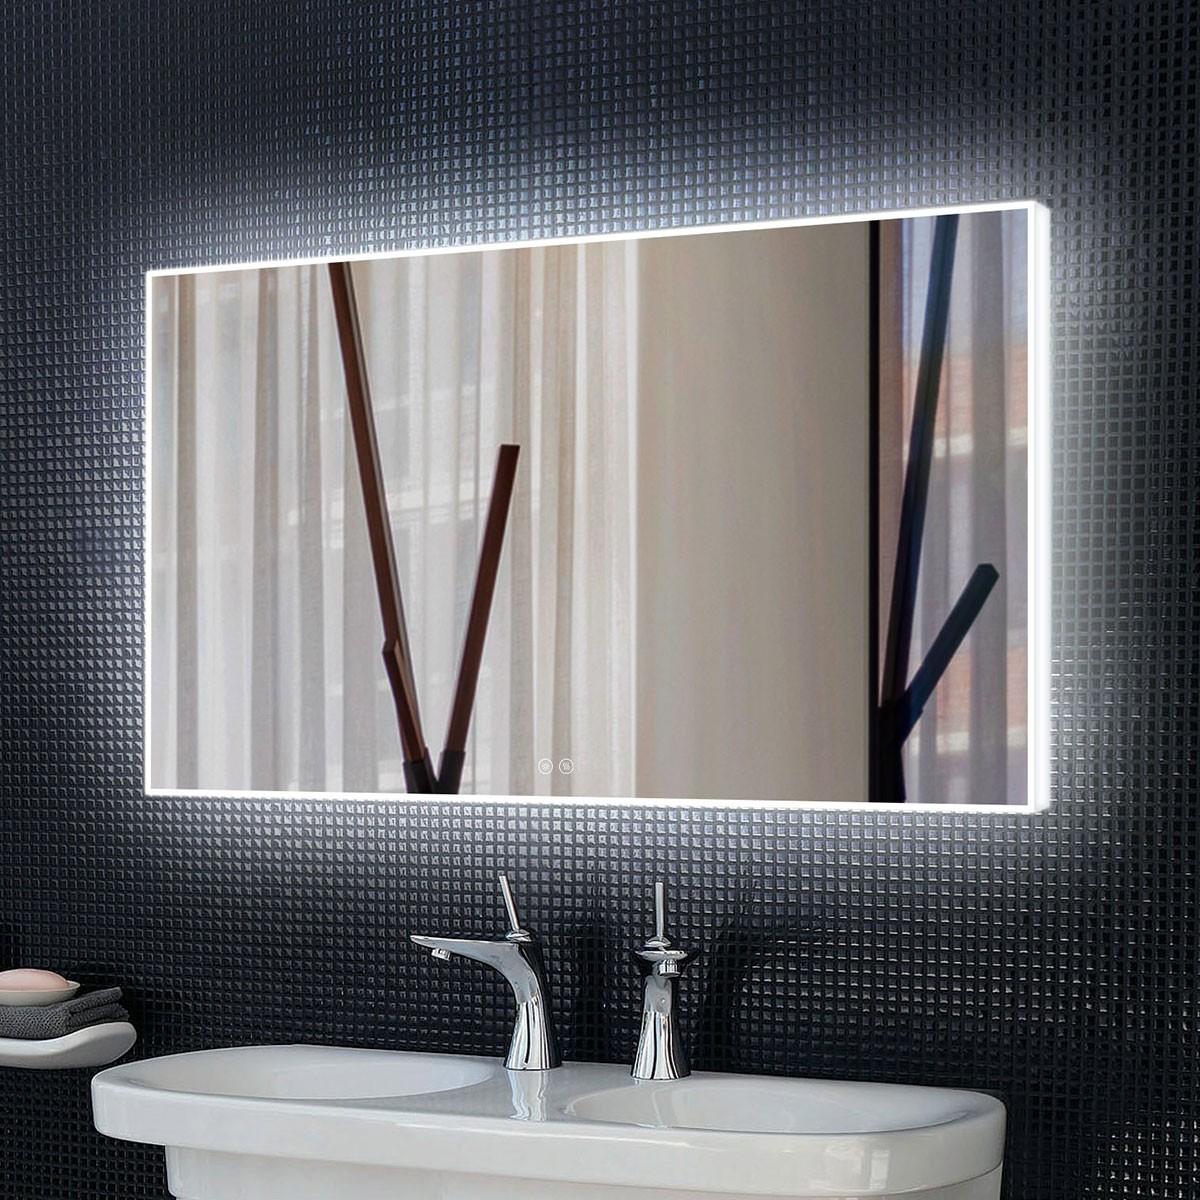 DECORAPORT 60 x 36 Inch LED Bathroom Mirror with Touch Button,Anti Fog, Dimmable, Bluetooth Speakers, Vertical & Horizontal Mount (D421-6036A)